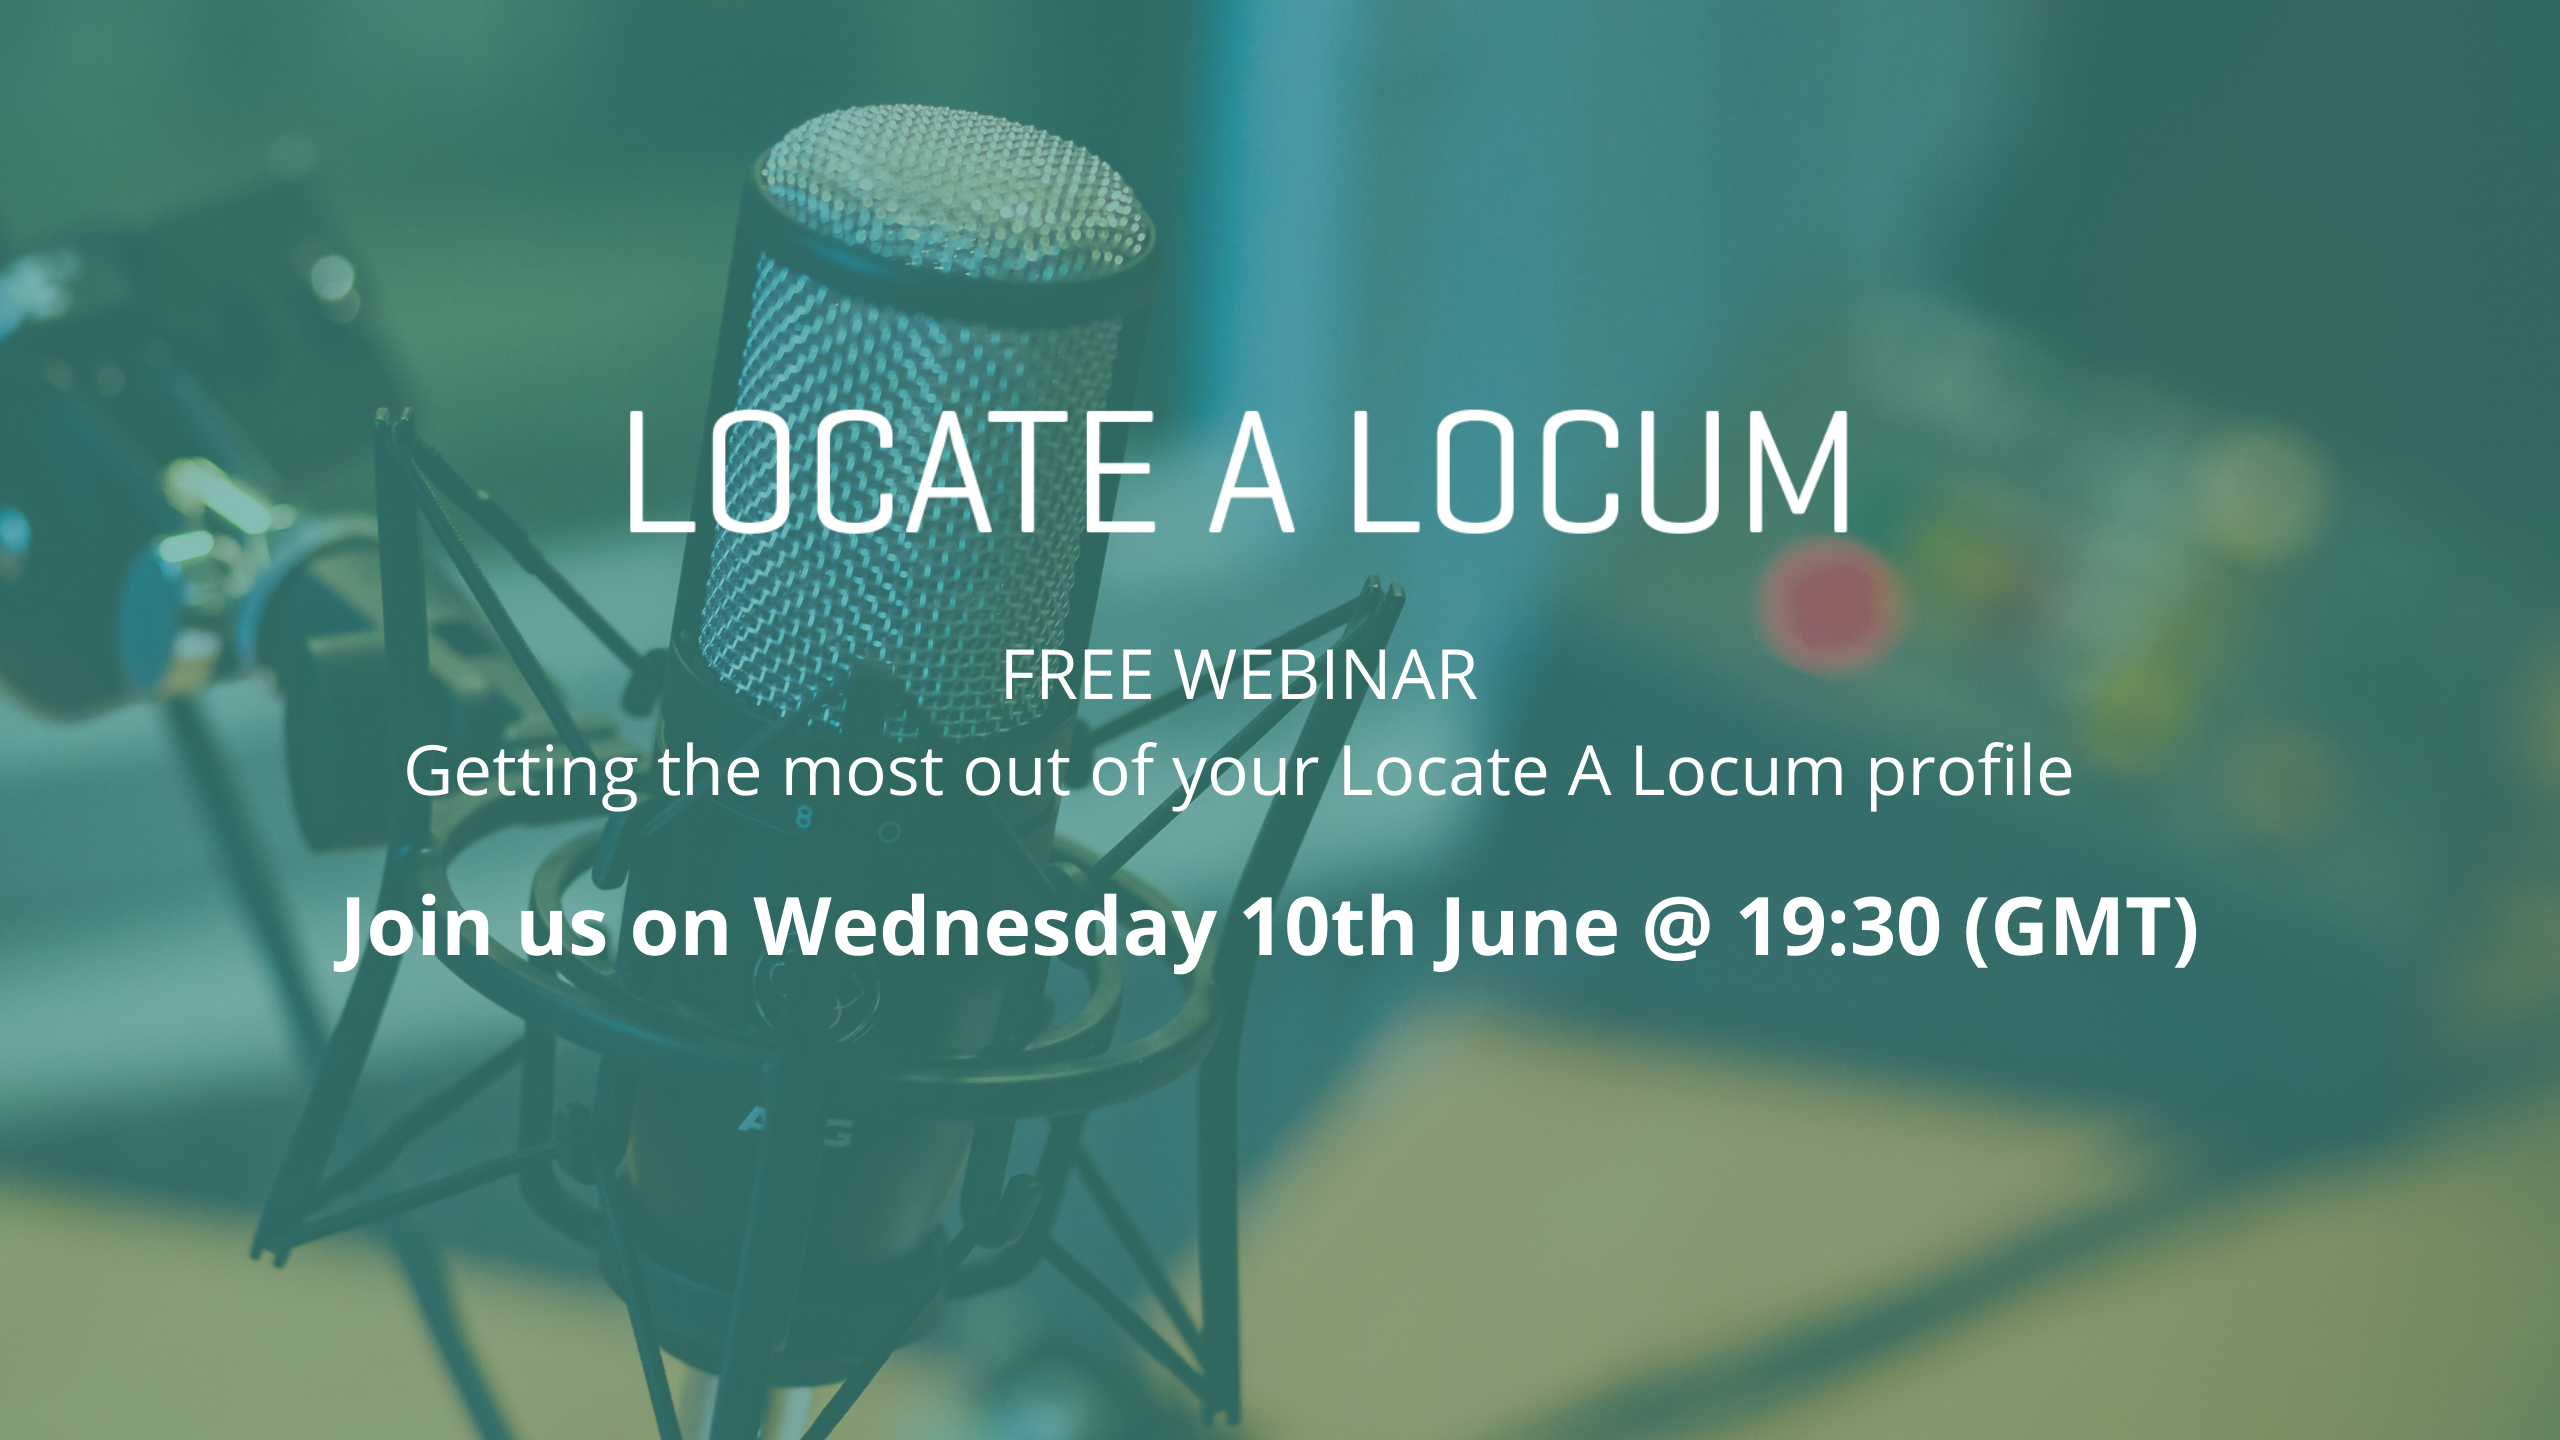 free-webinar-getting-the-most-out-of-your-locate-a-locum-profile